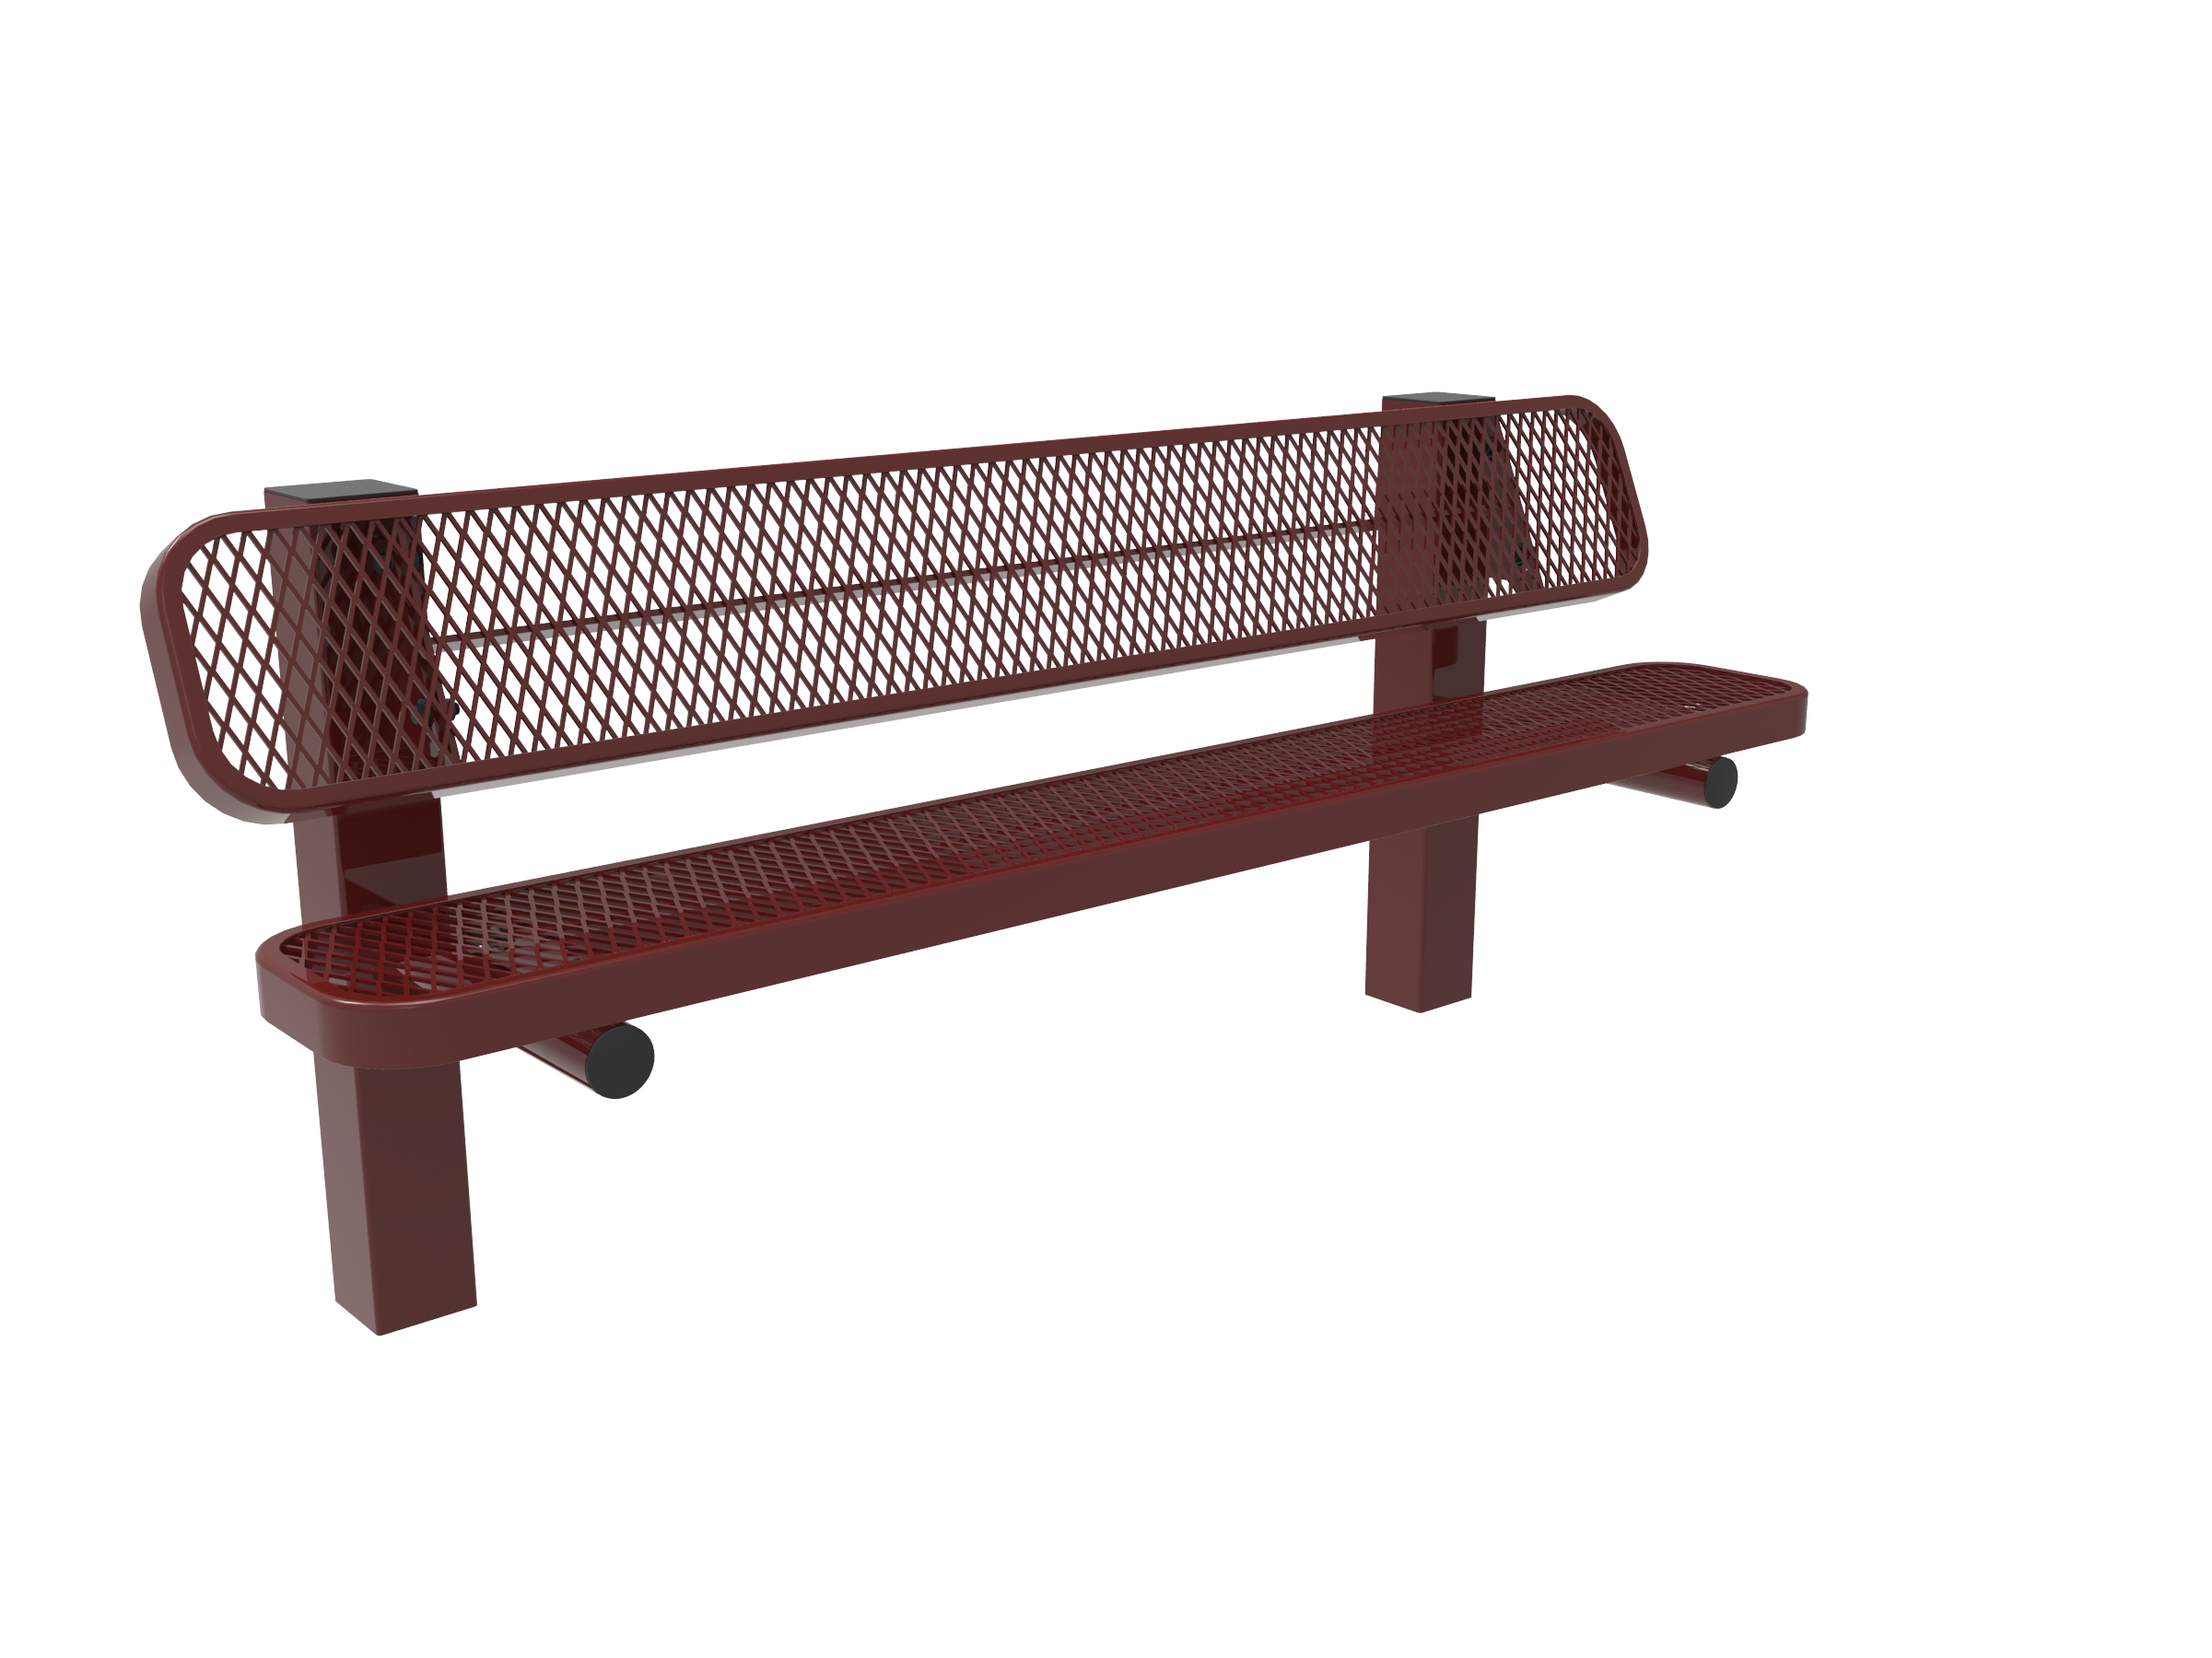 6' Lexington Pedstal Bench with Back